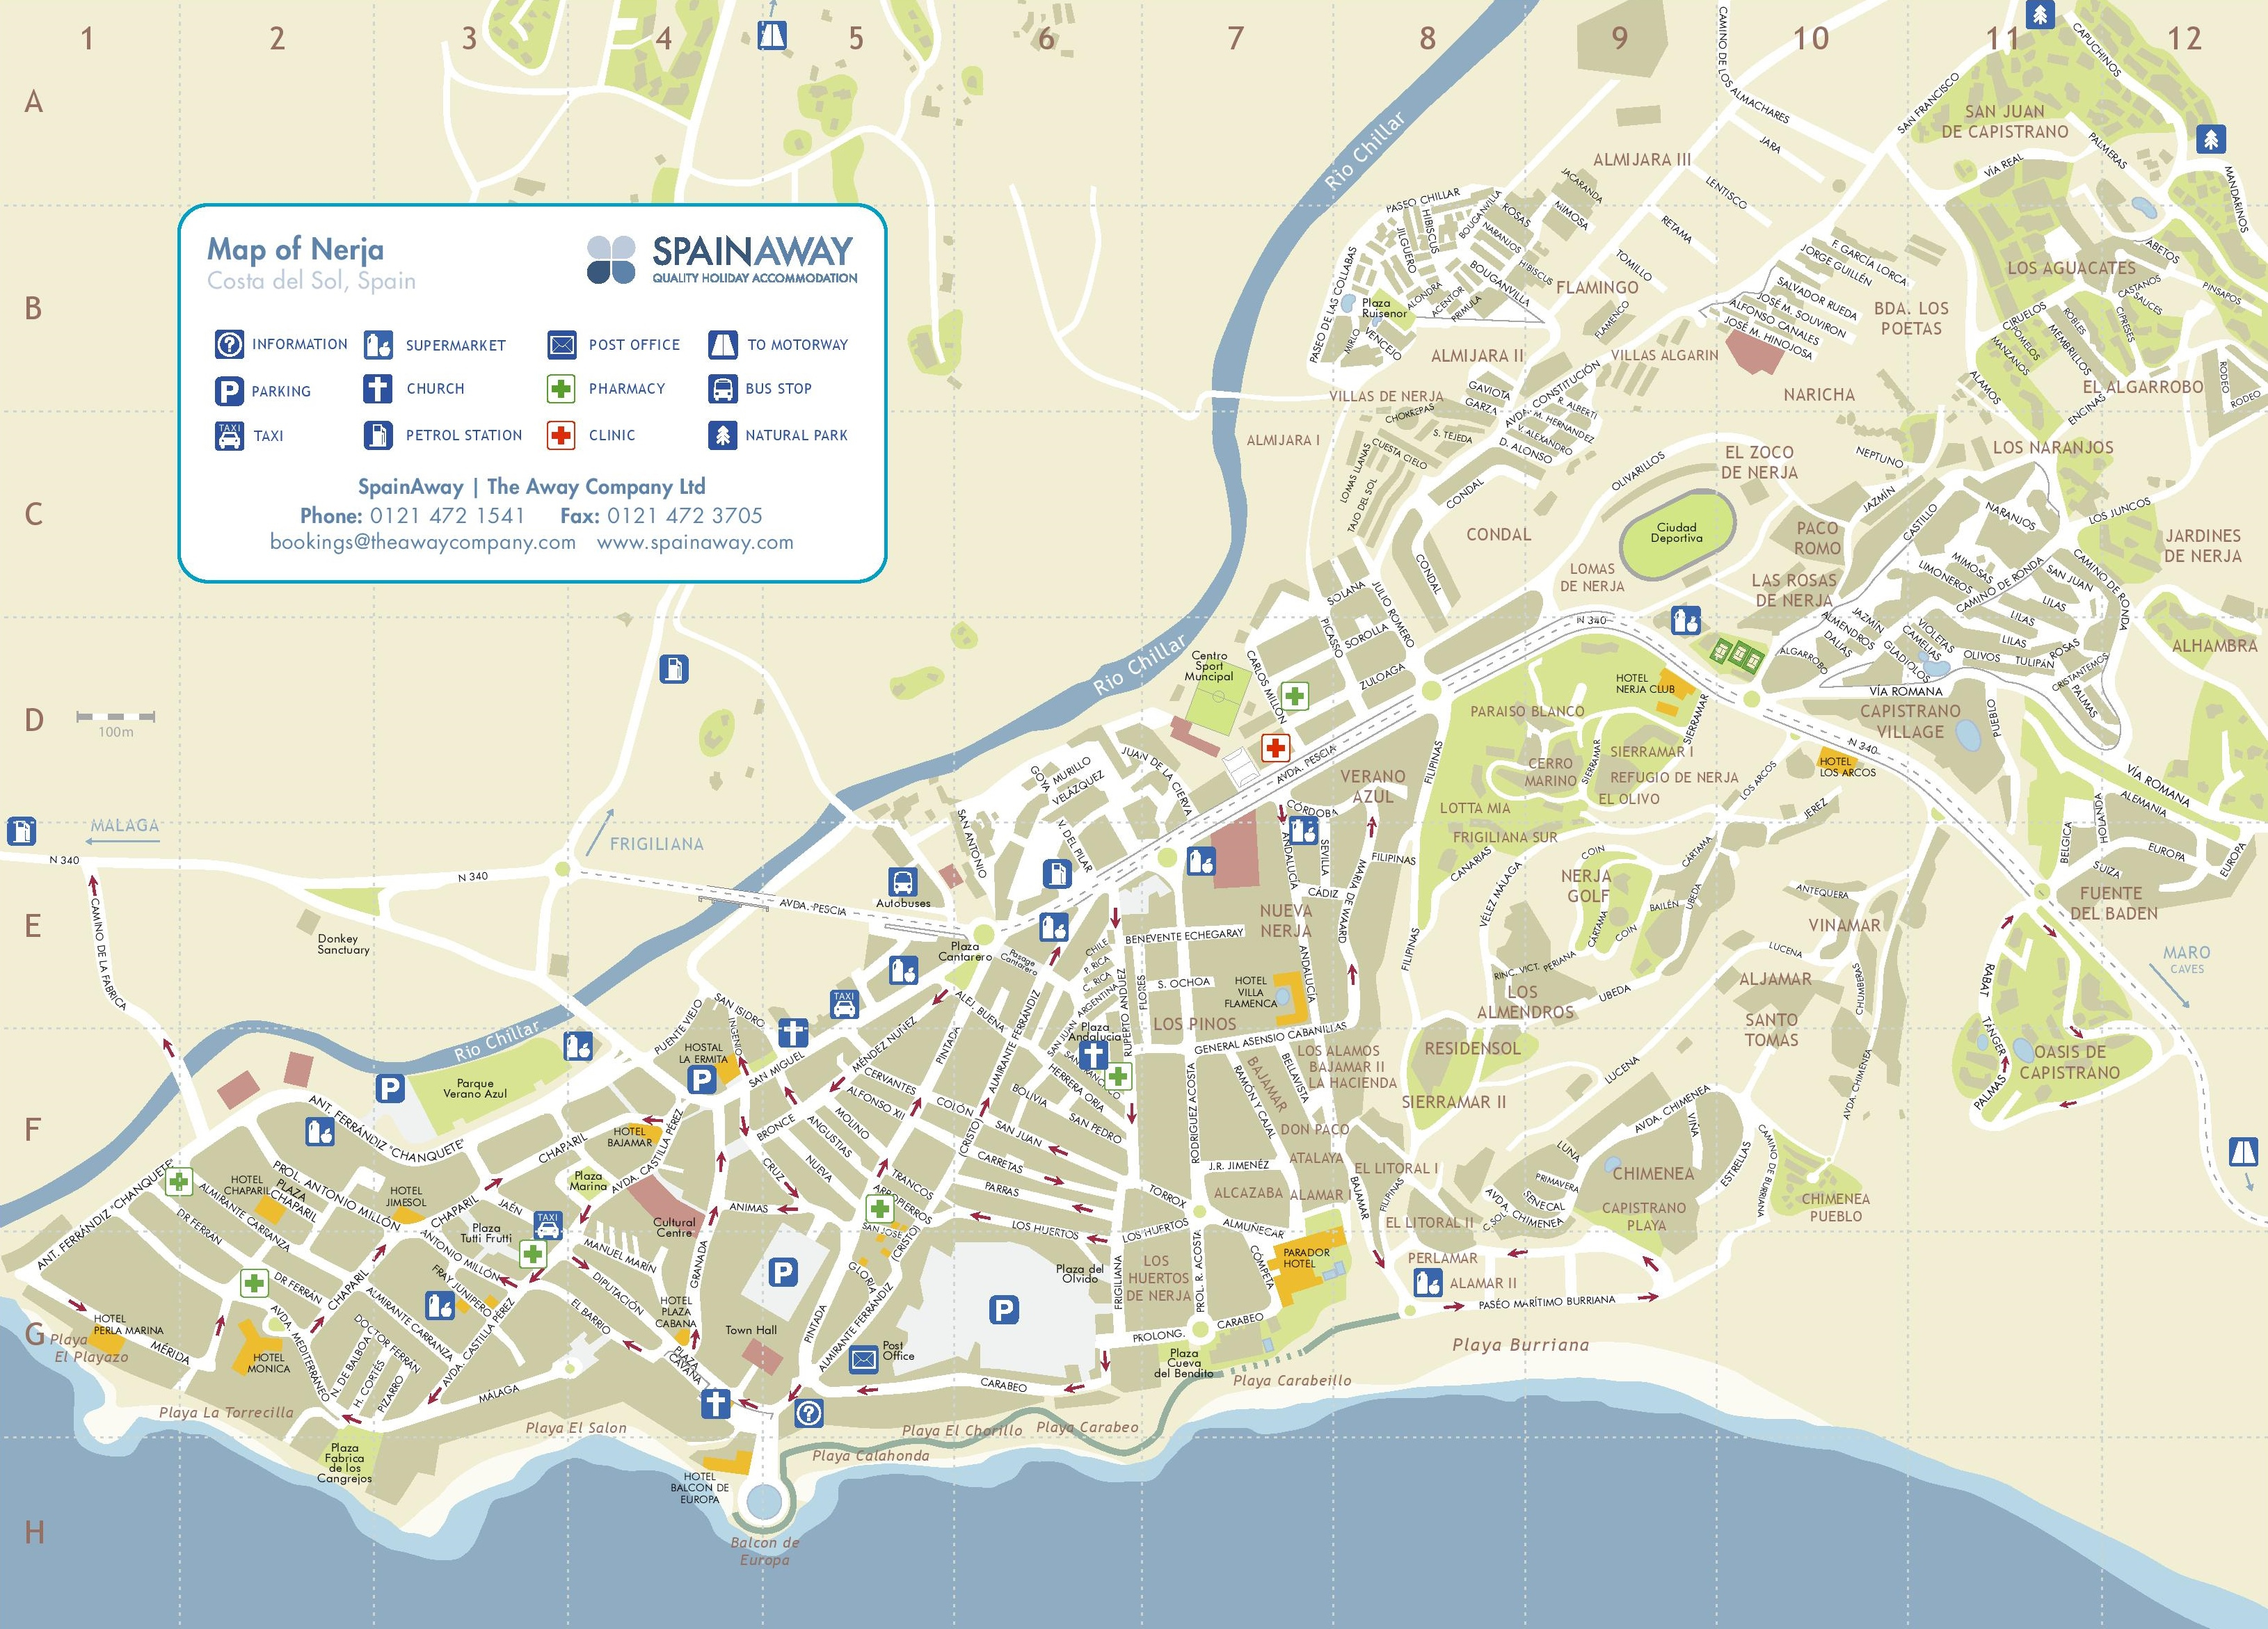 Nerja Tourist Map - Printable Street Map Of Nerja Spain